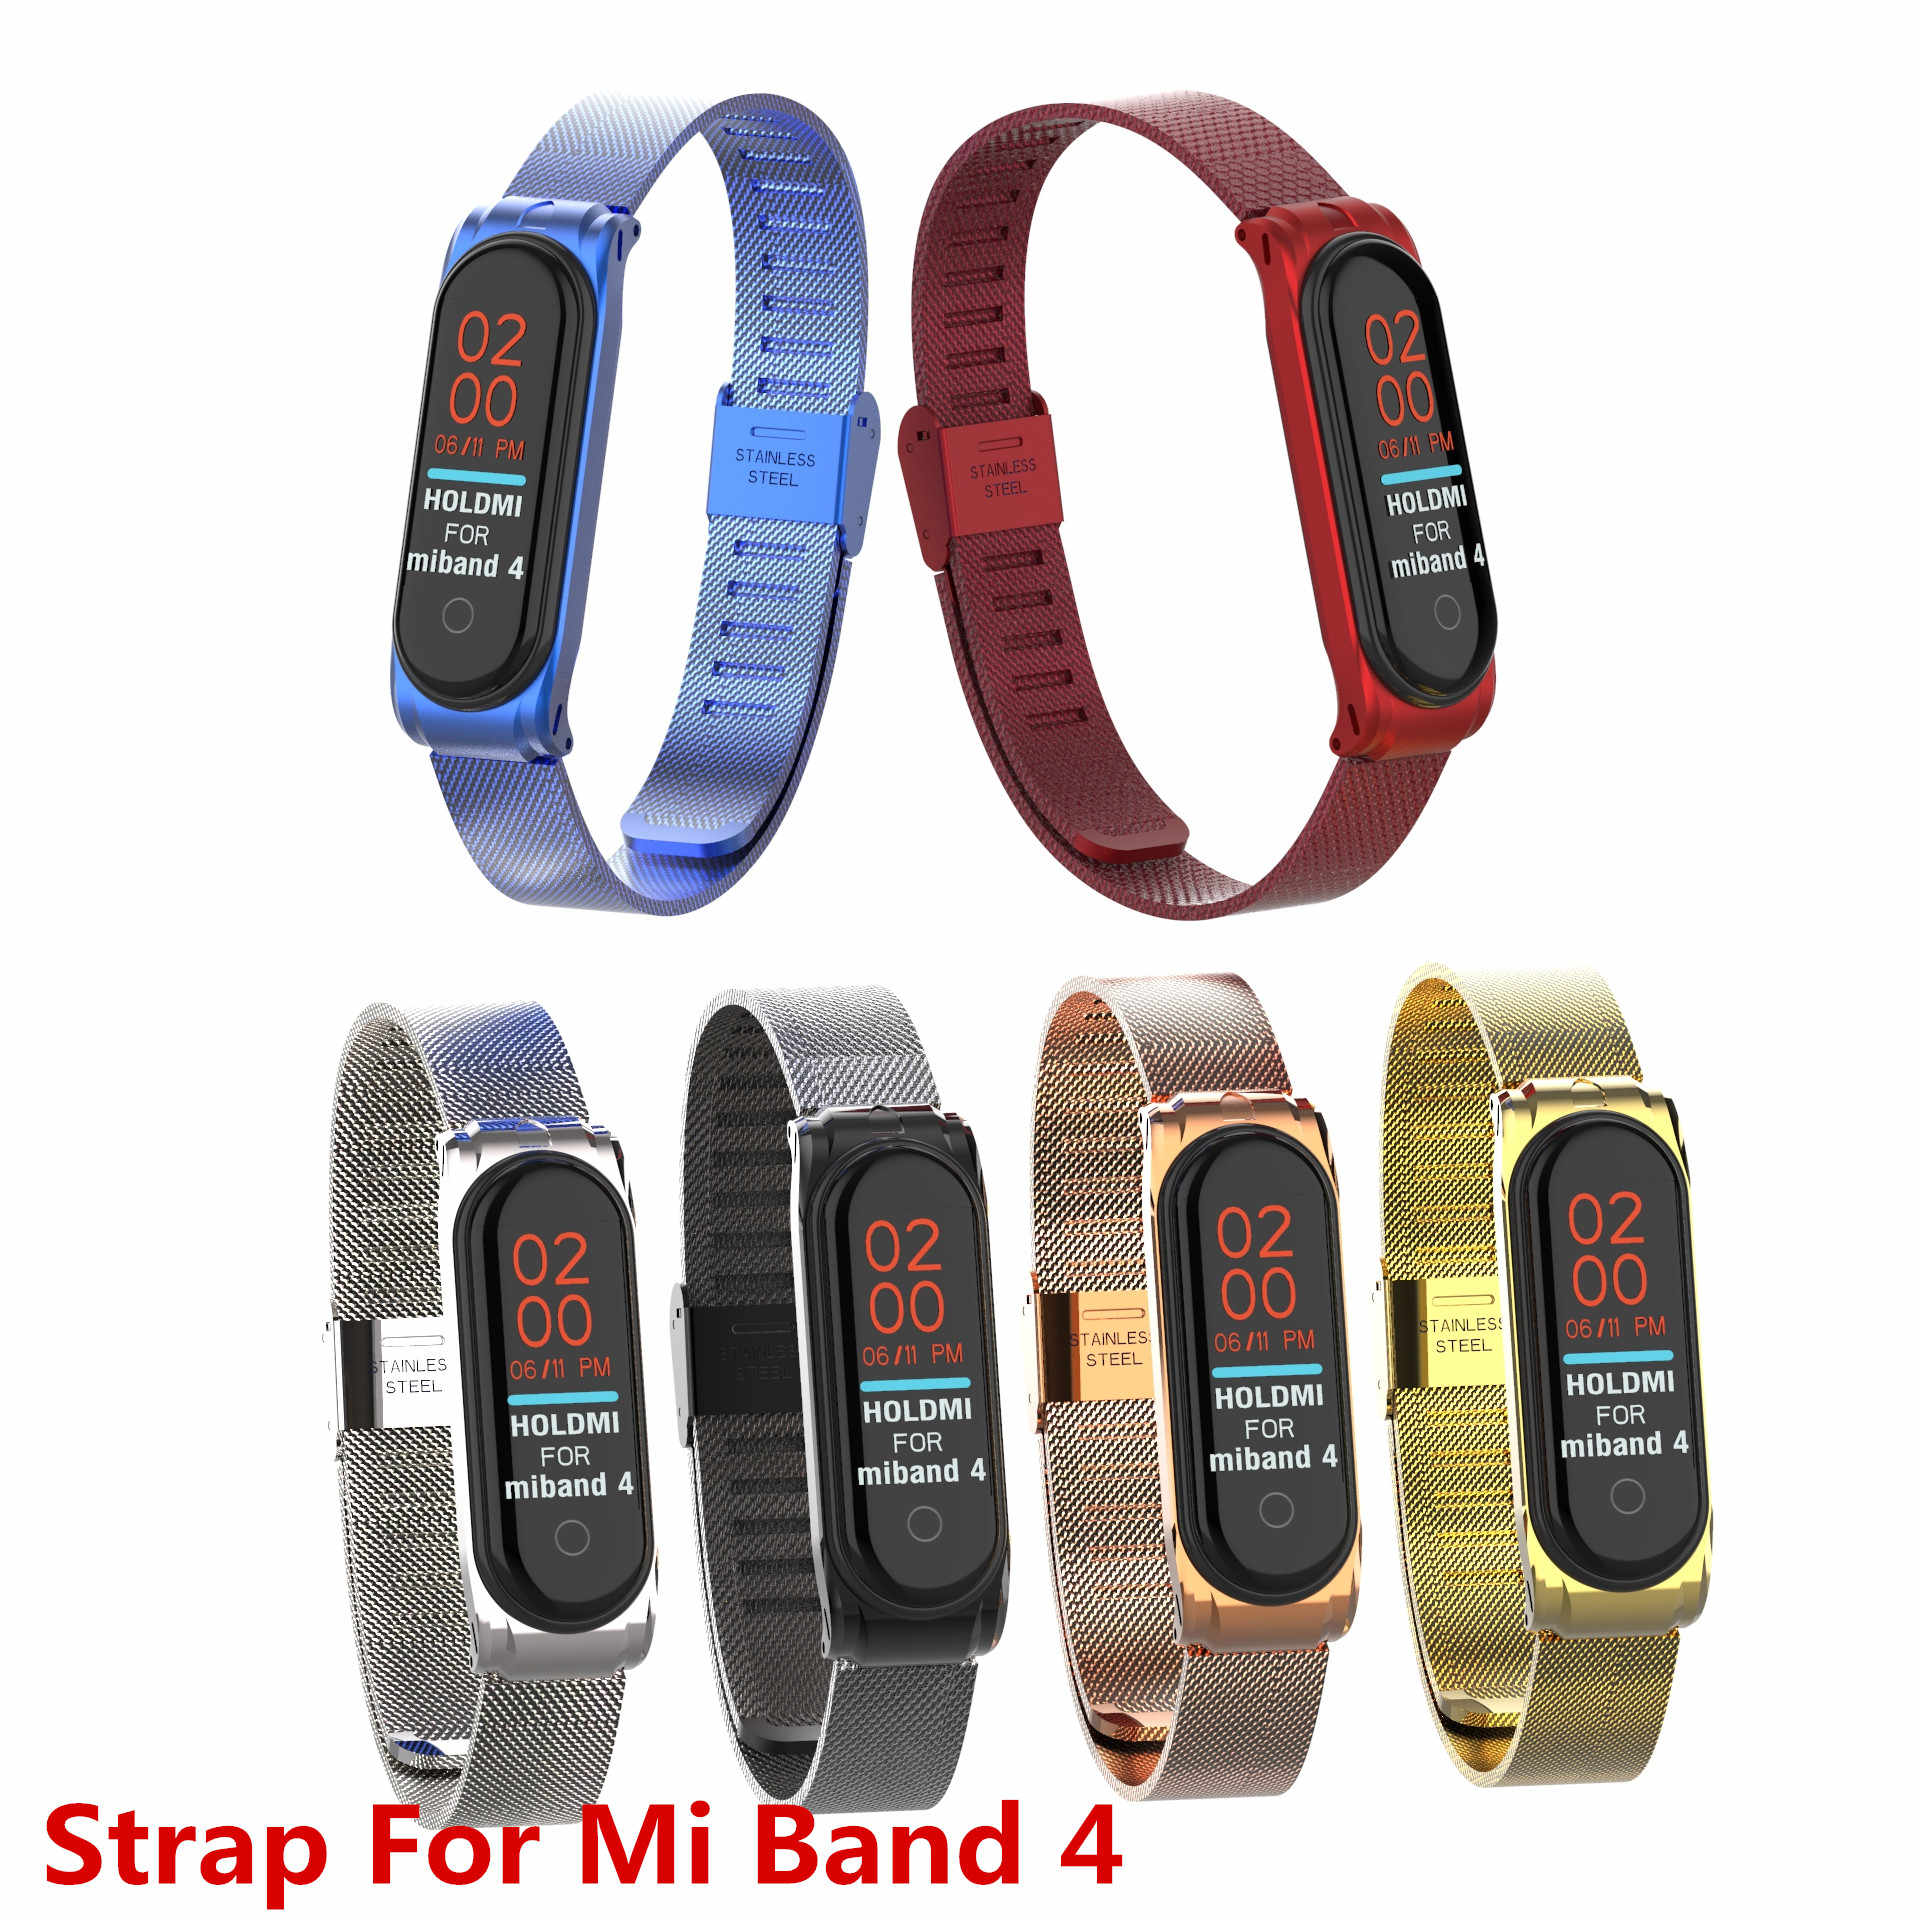 Mi Band 4 Strap Metal Wrist Strap For Xiaomi Mi Band 4 Bracelet Buckle Steel Band4 Accessories Band 4 Wristband Straps